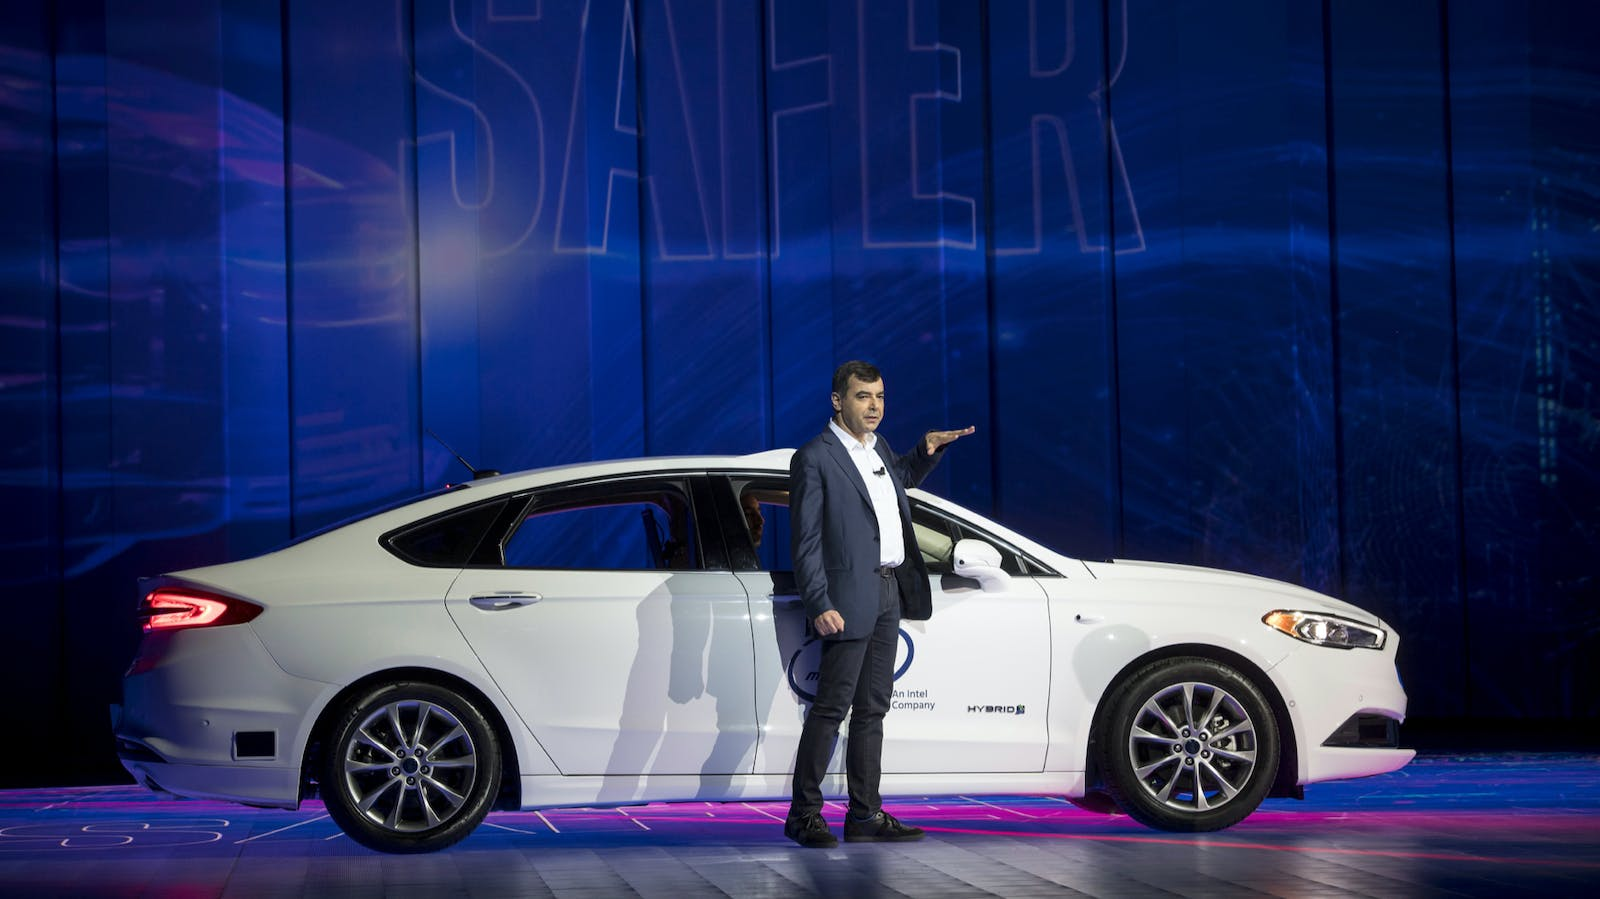 Amnon Shashua, co-founder and chief technology officer of Mobileye, speaks at a conference last year. Photo by Bloomberg